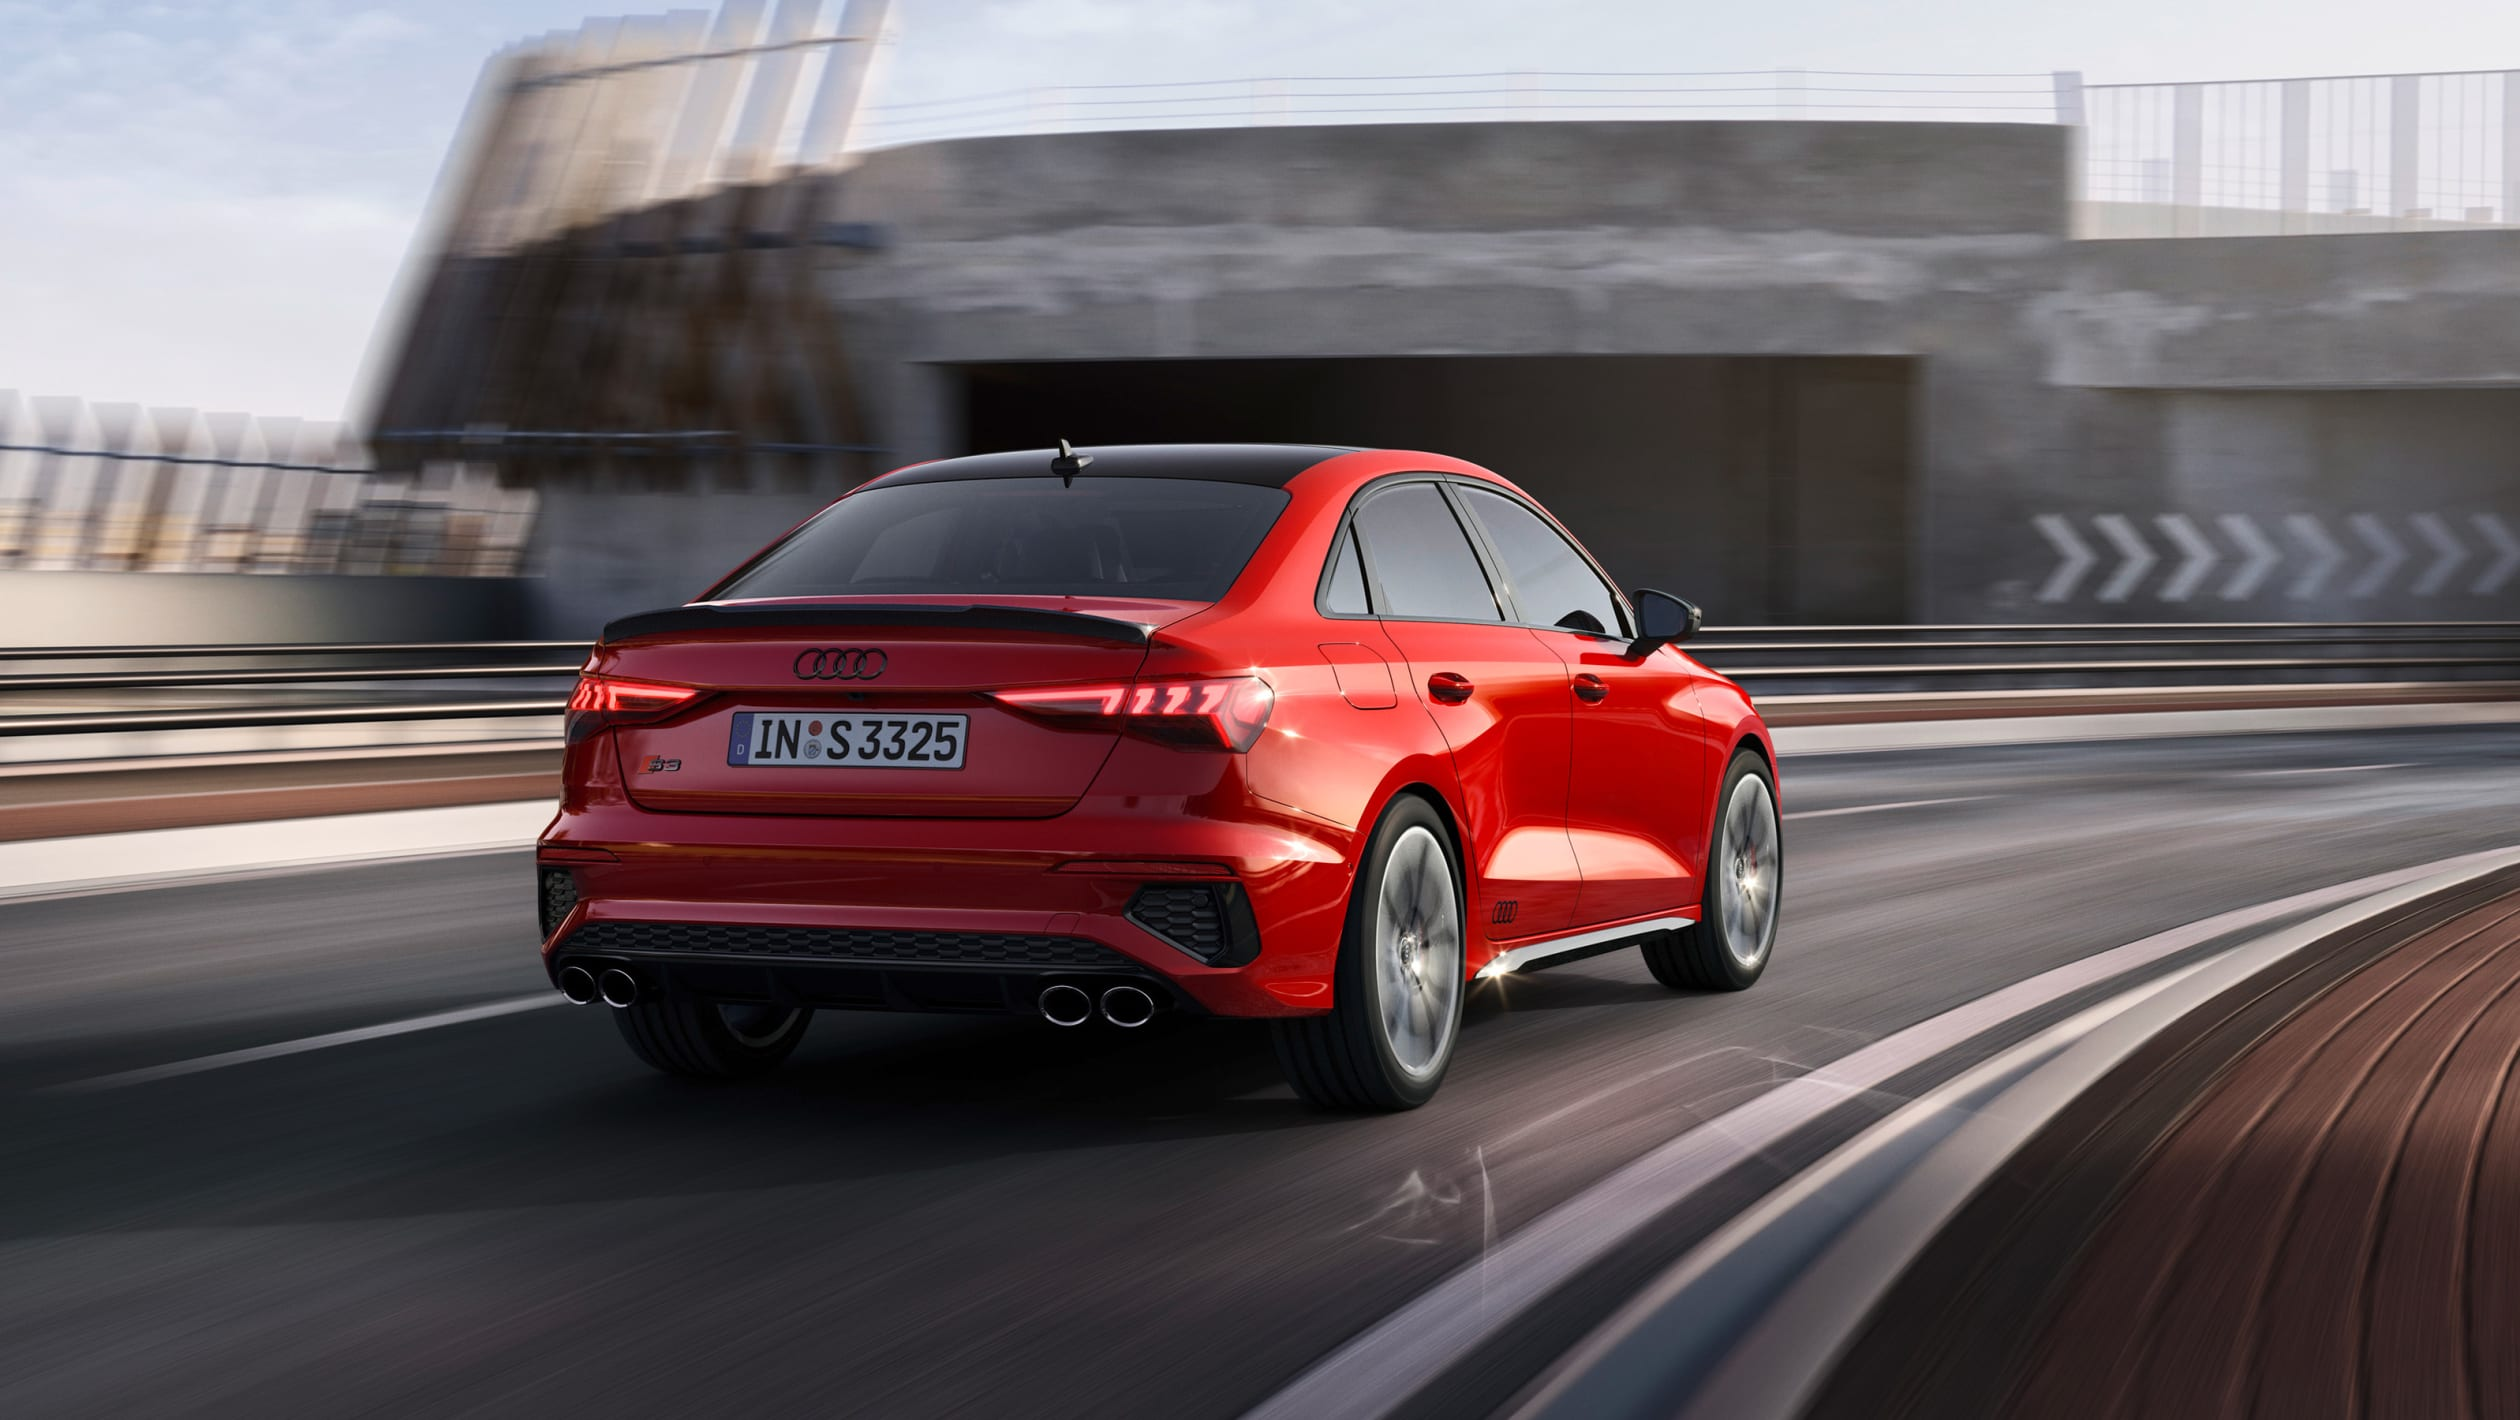 New 2021 Audi S3 Sportback and Sedan arrive with 228kW ...